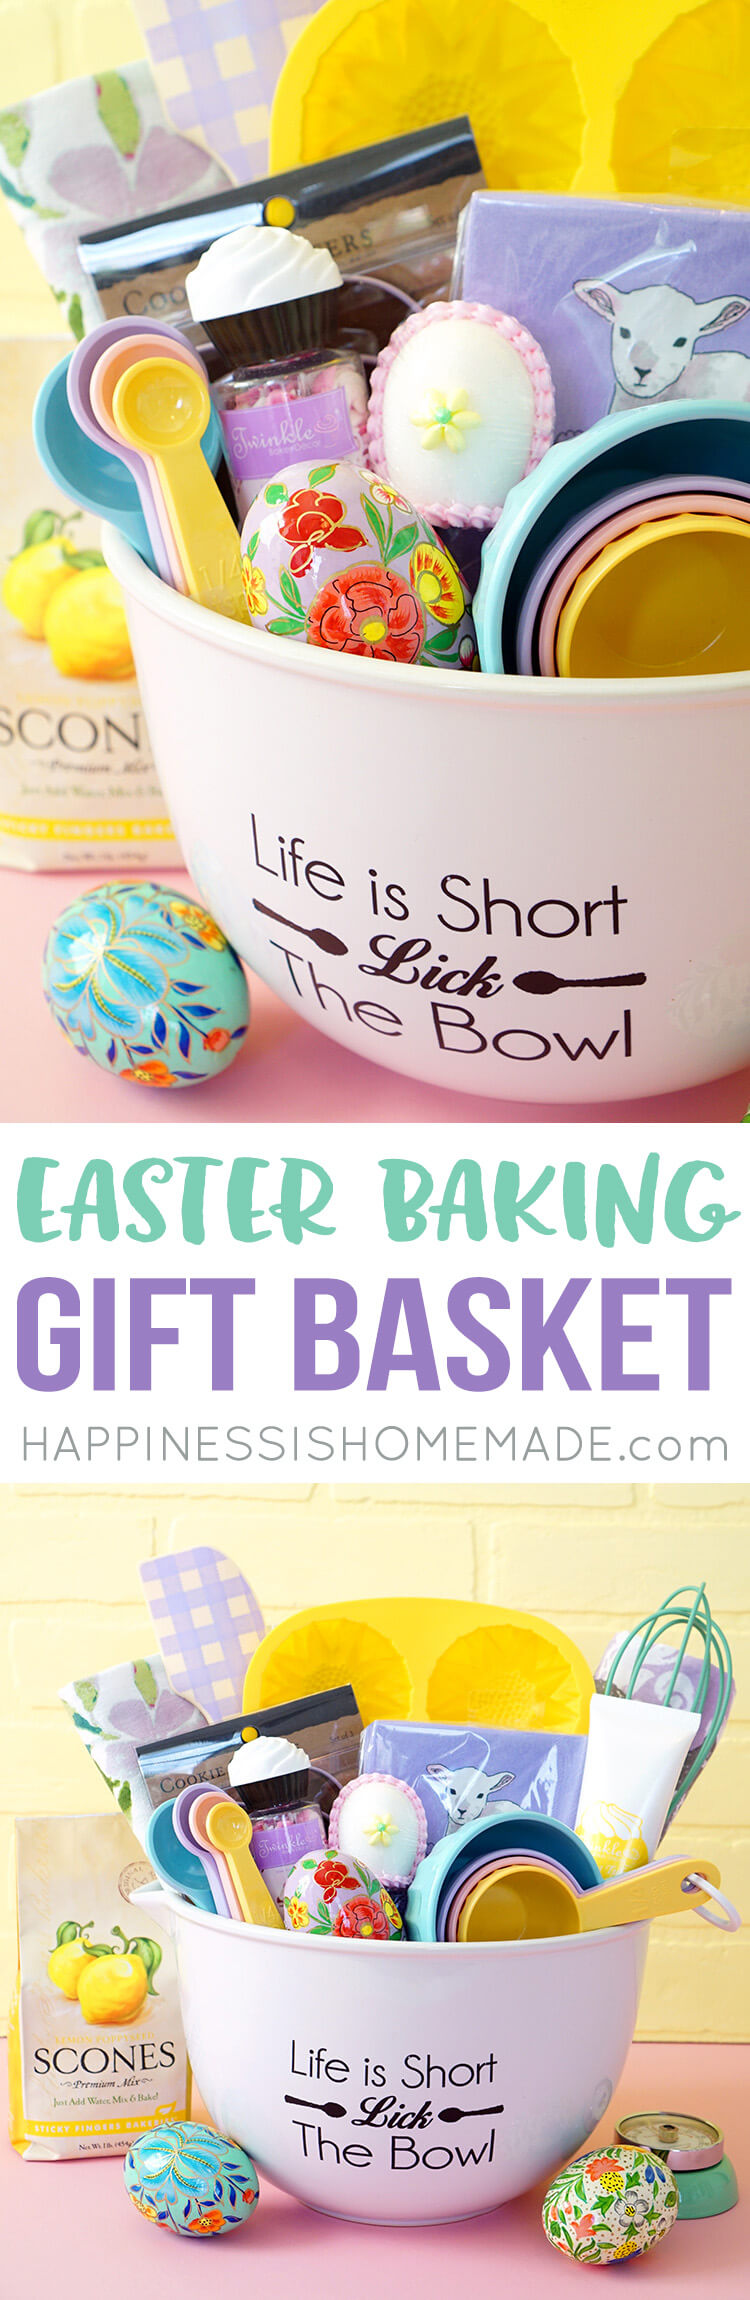 Easter baking gift basket happiness is homemade if you like this idea dont forget to pin it negle Images